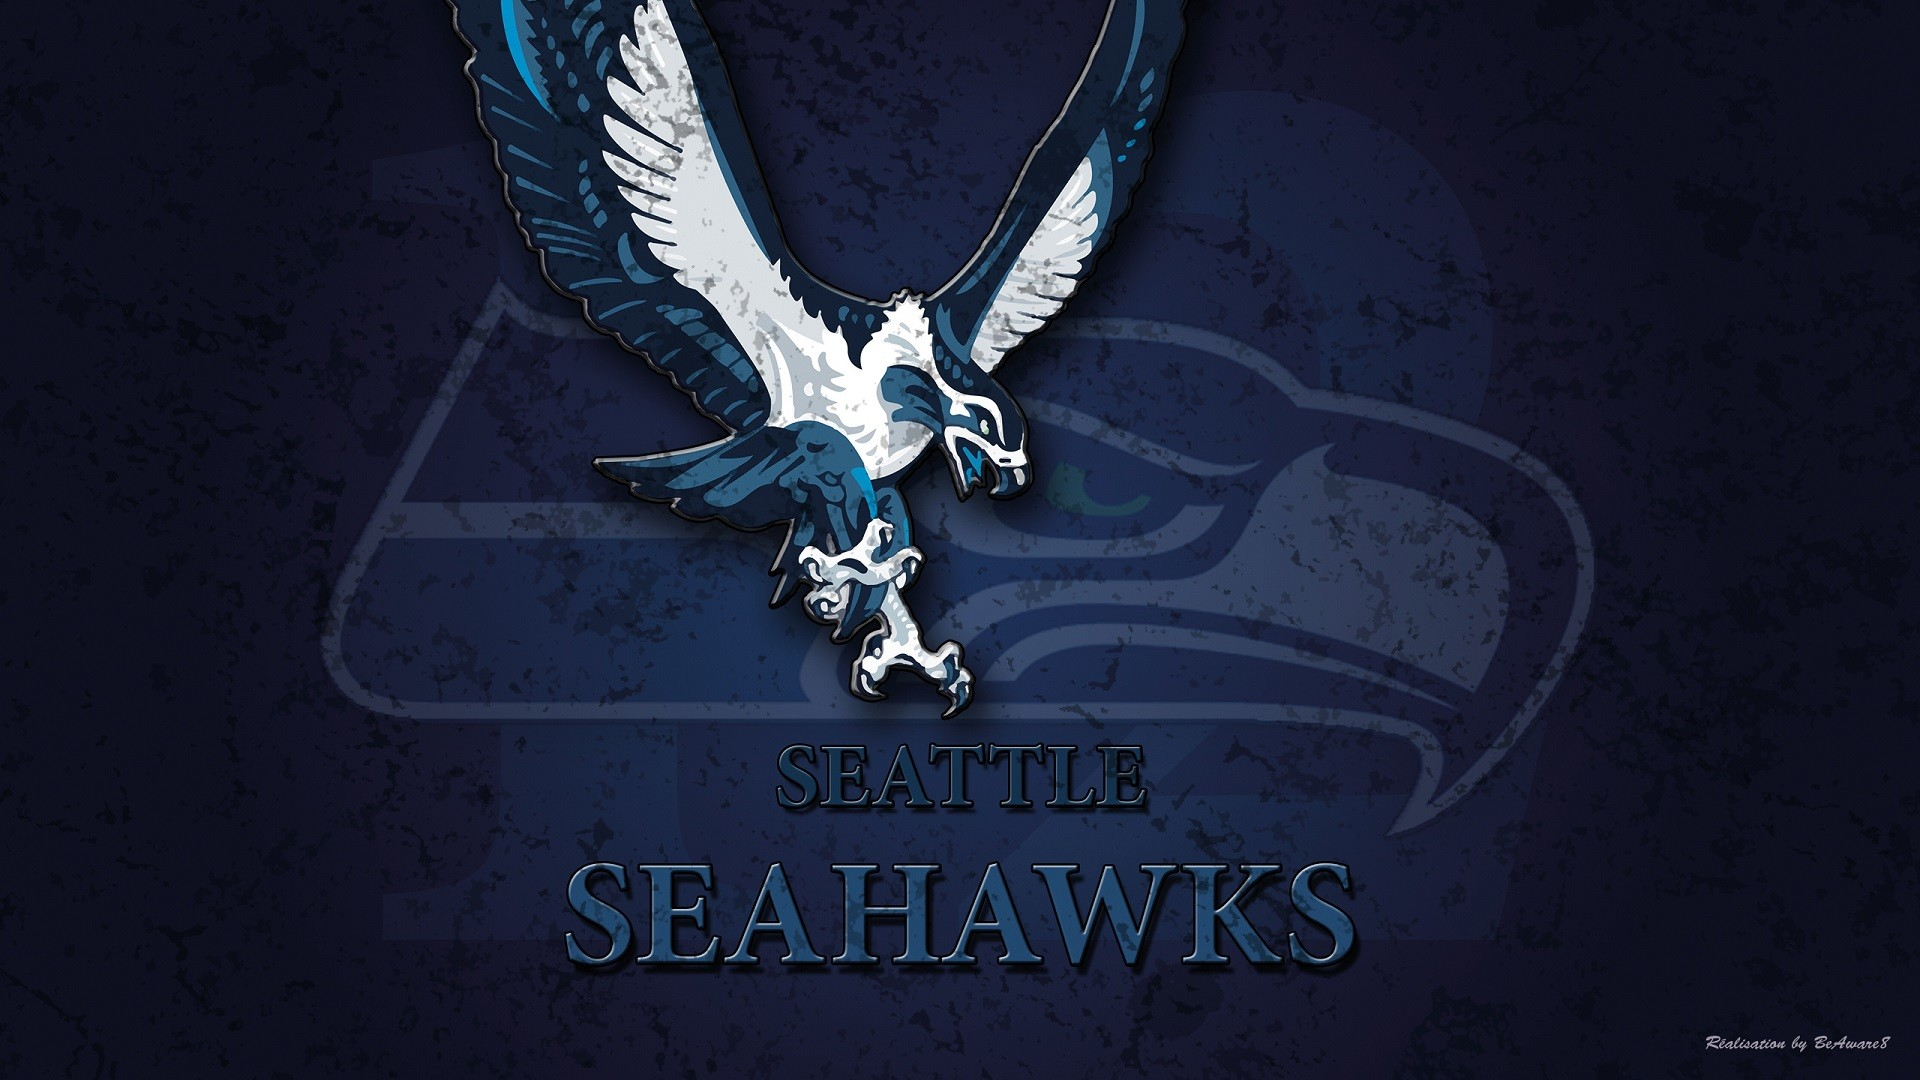 Seattle Seahawks Wallpaper 1920x1080: Seahawks Logo Wallpaper Pics (69+ Images